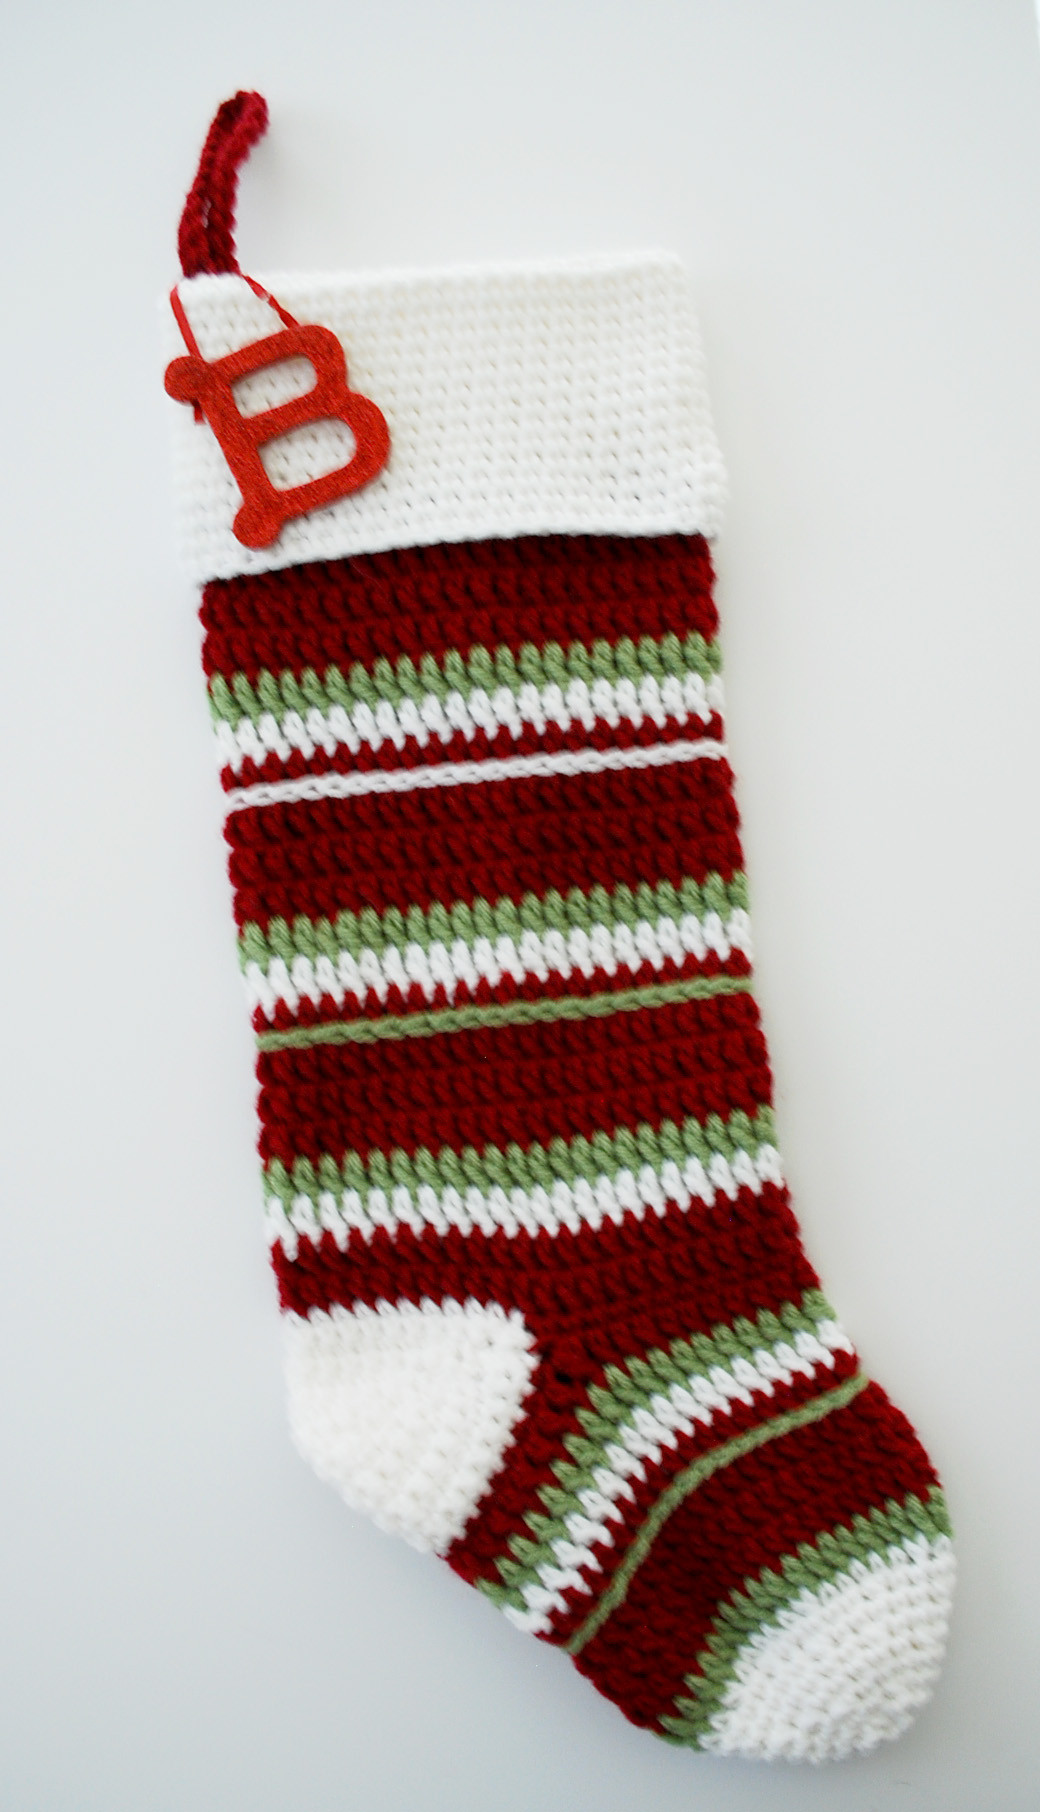 Best Of Crochet Christmas Stockings B Hooked Crochet Crochet Pattern for Christmas Stocking Of Fresh 40 All Free Crochet Christmas Stocking Patterns Patterns Hub Crochet Pattern for Christmas Stocking